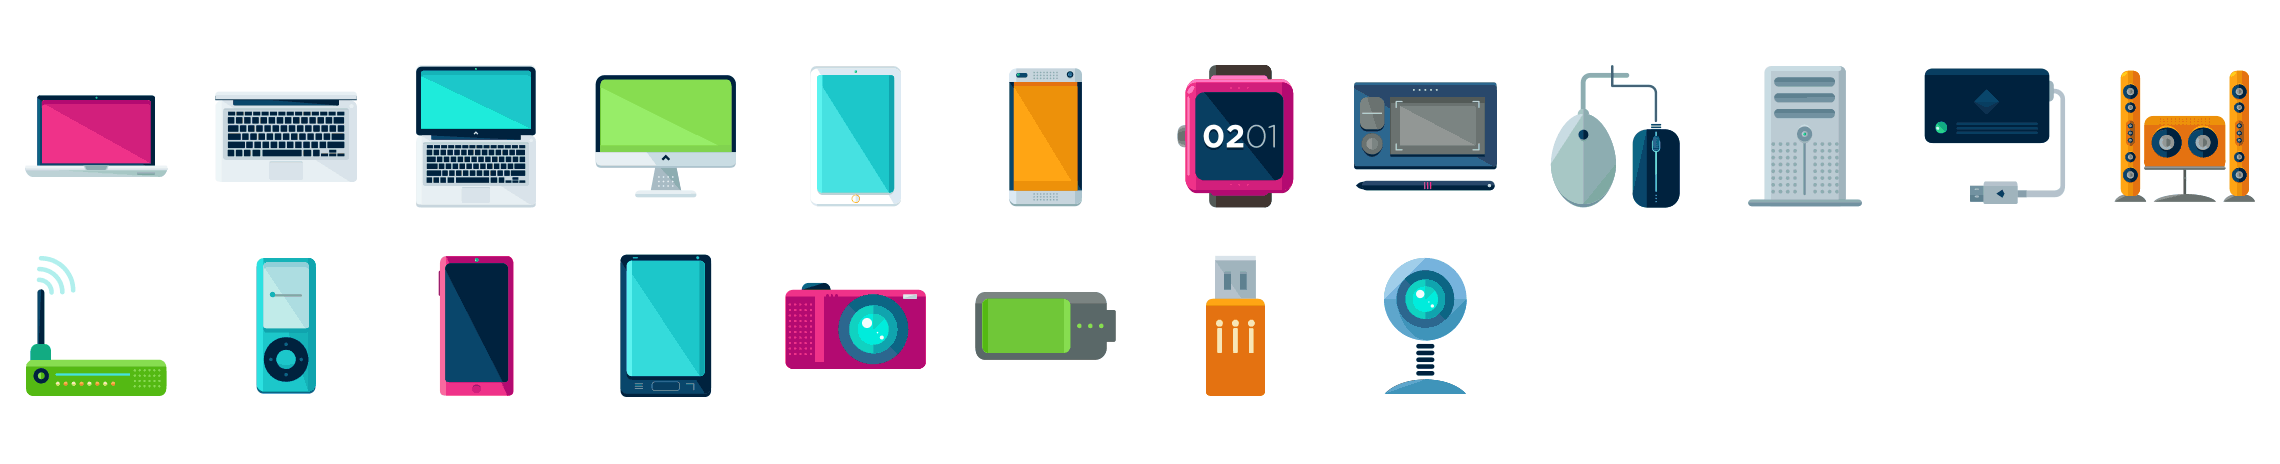 Devices-flat-icons